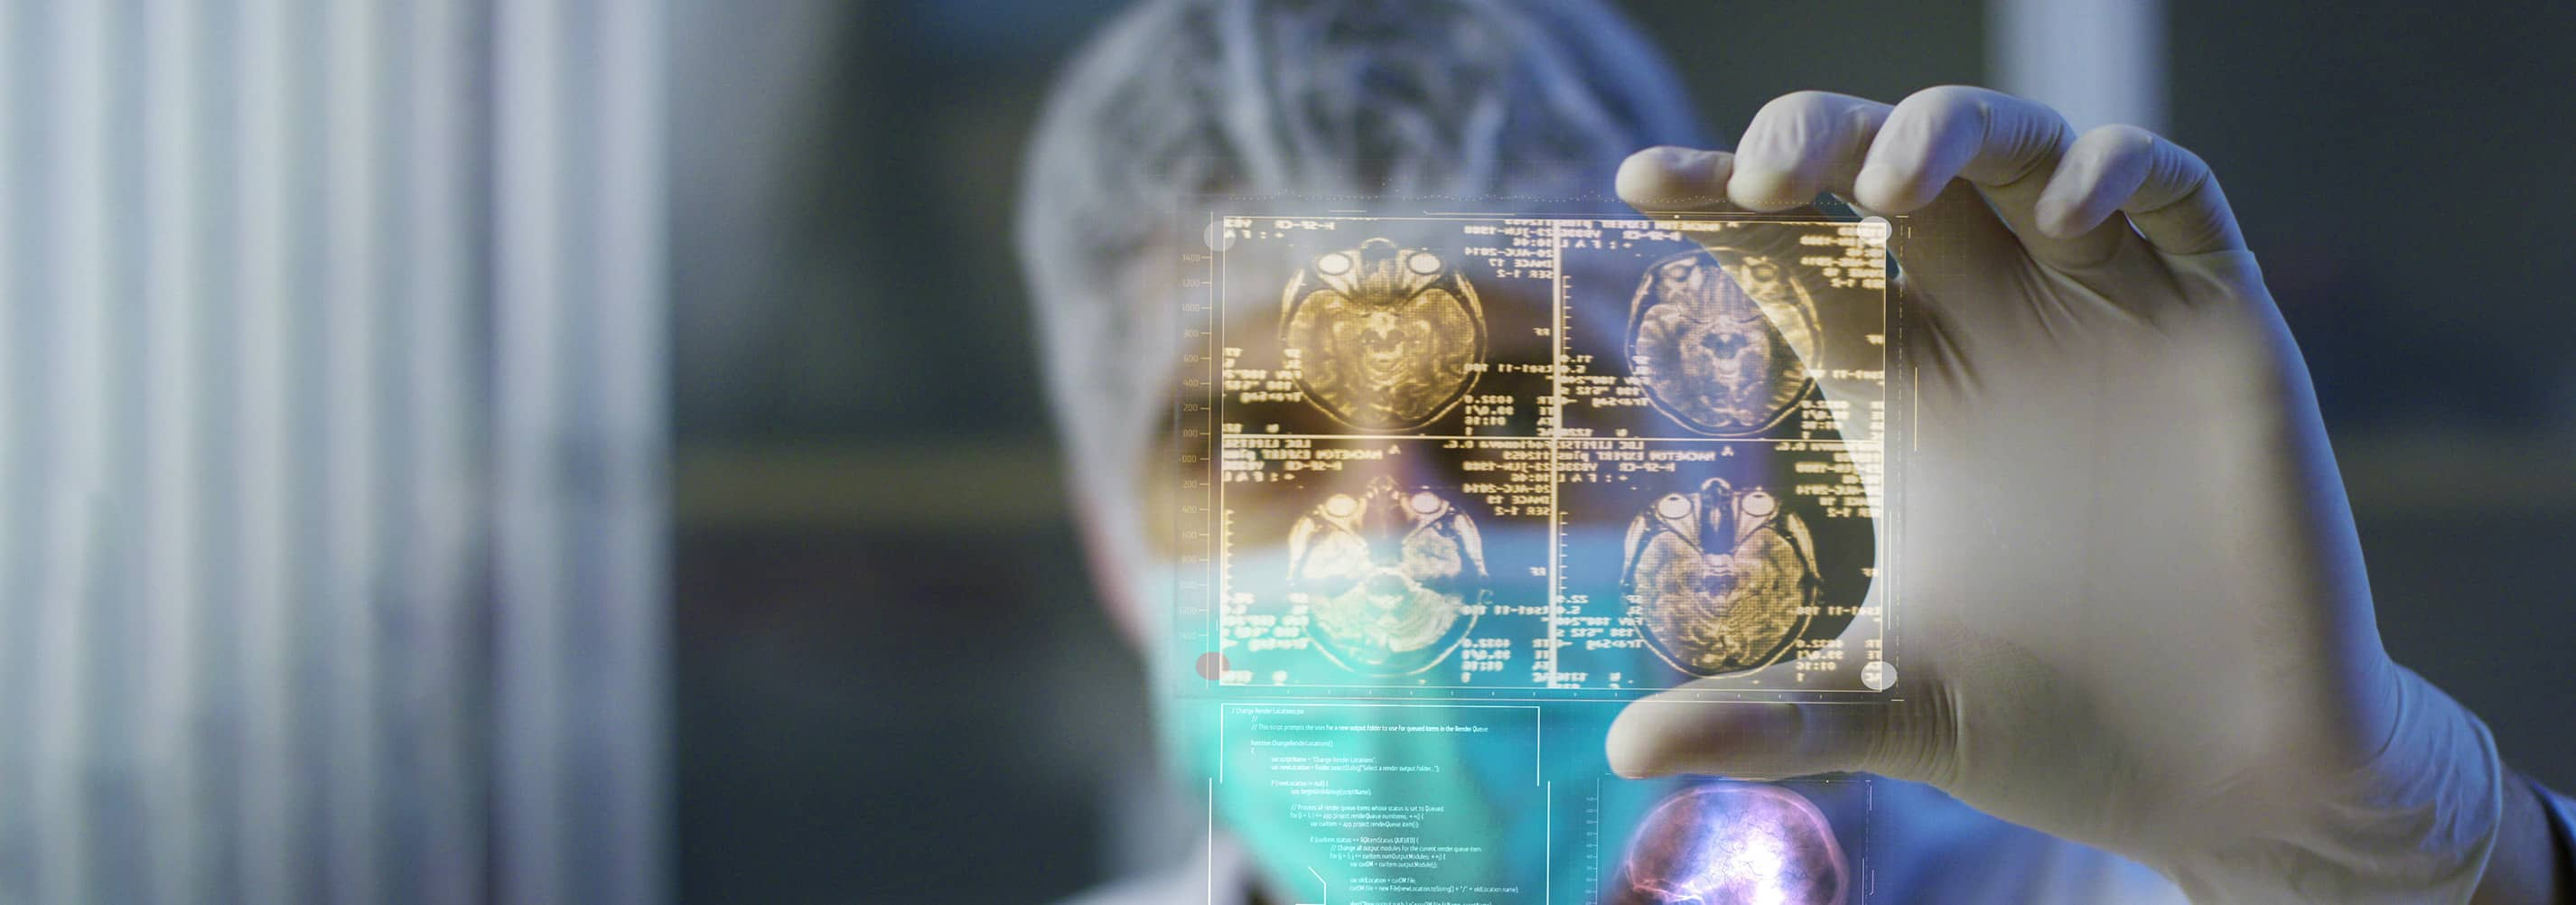 The Internet of Medical Things (IoMT)